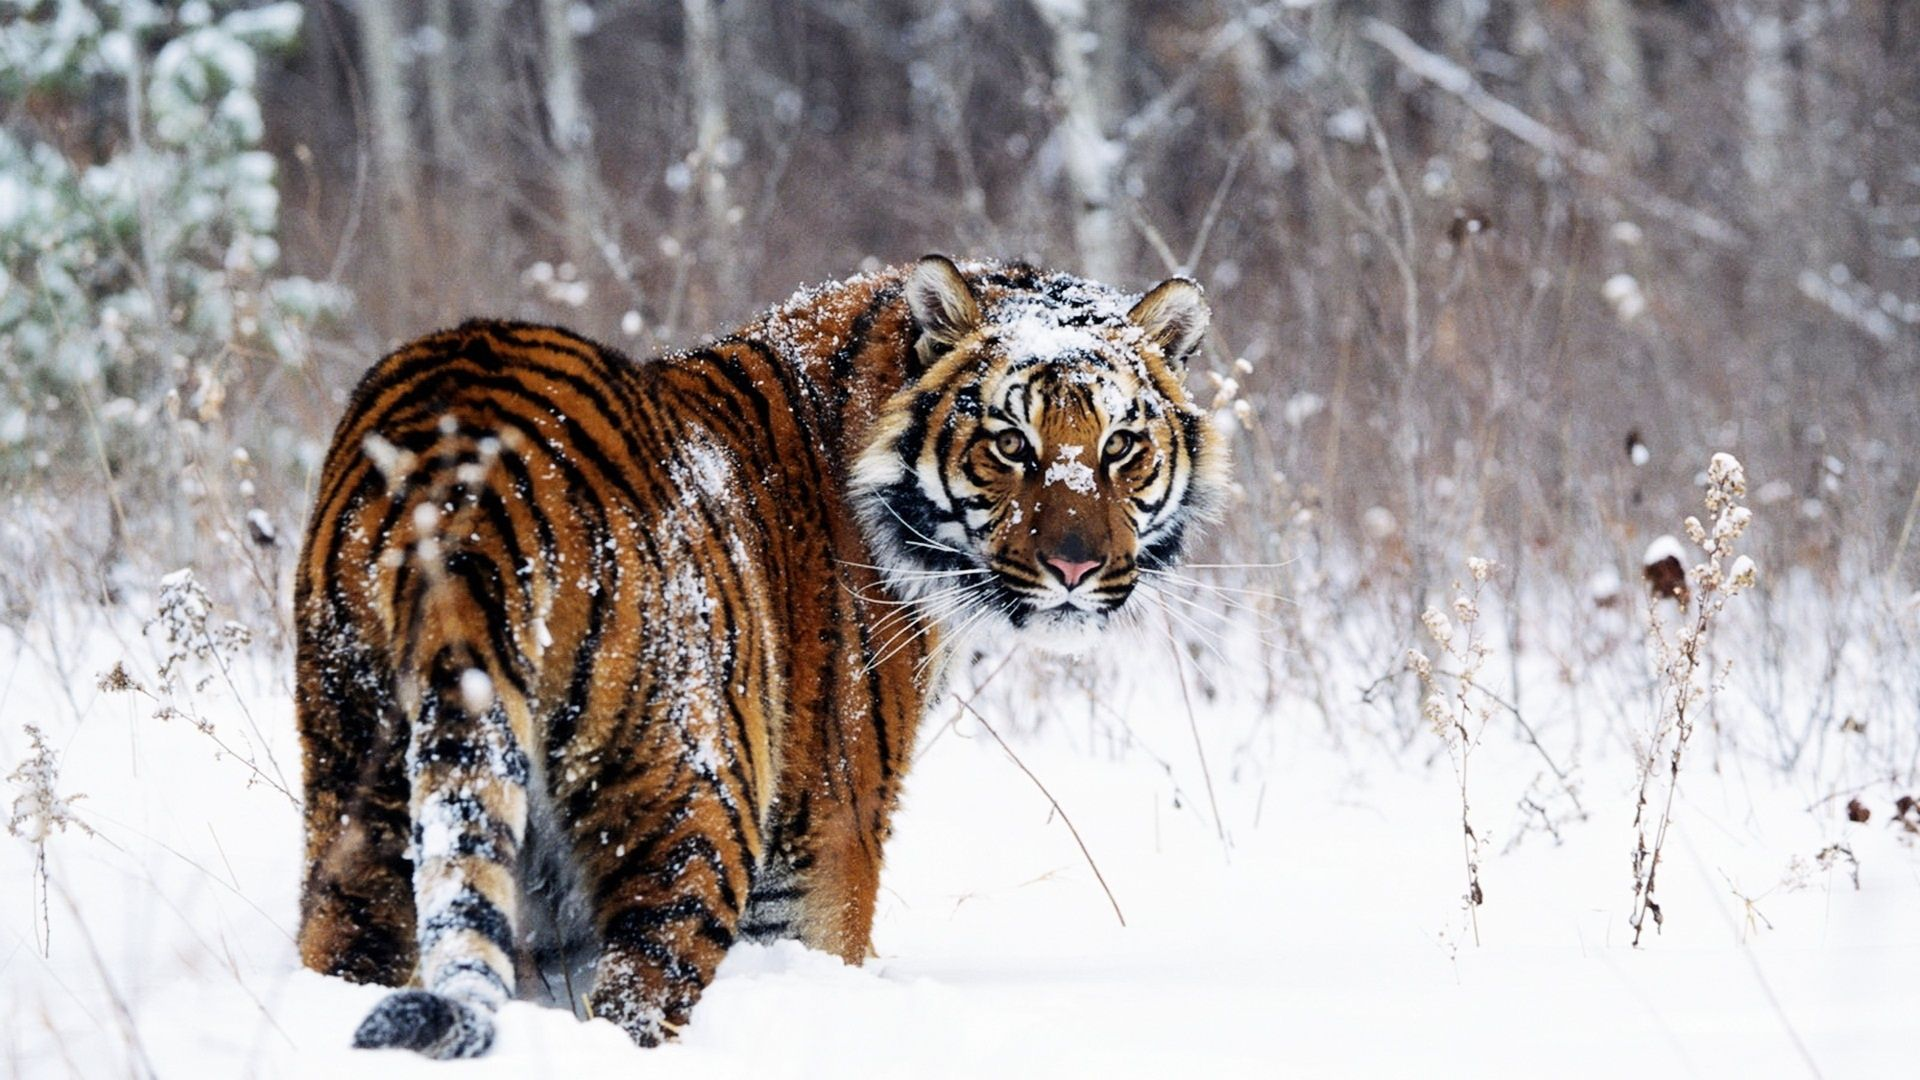 Tiger in Snow Wallpapers in jpg format for free download